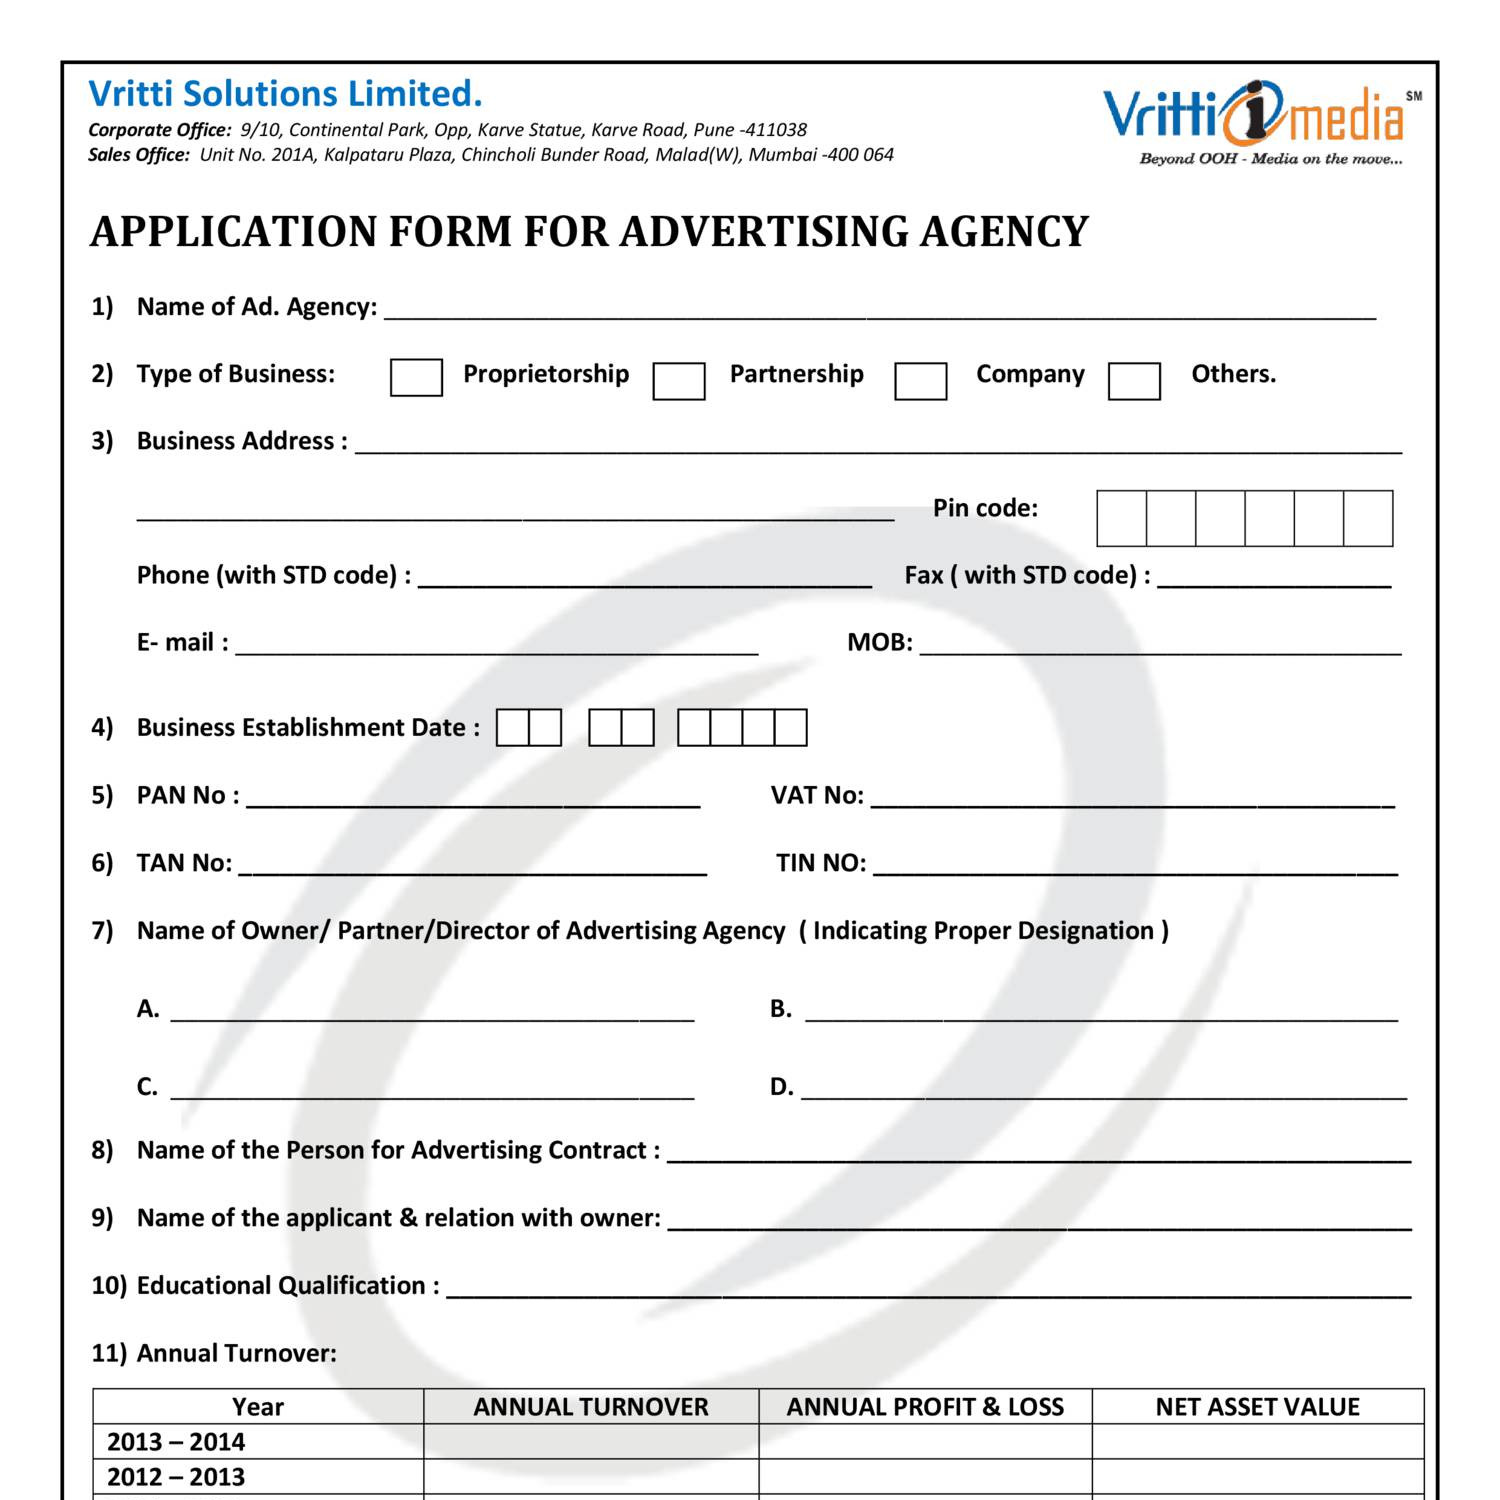 APPLICATION FORM FOR ADVERTISING AGENCY _ ver 05 _ 09th jan 2016 ...